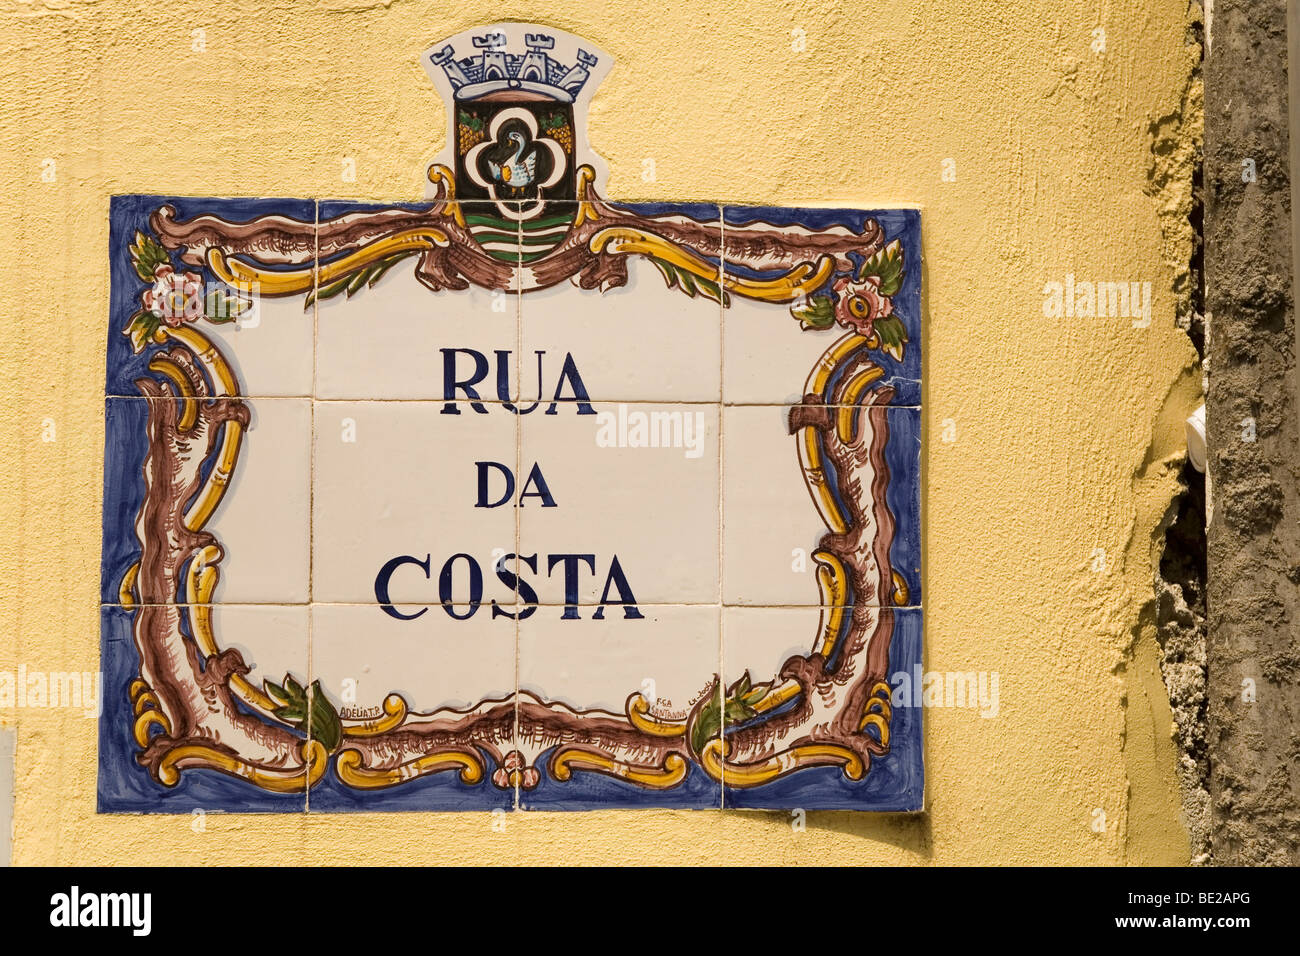 A traditional Portuguese street sign made of azulejos (tiles), bearing the street name. - Stock Image